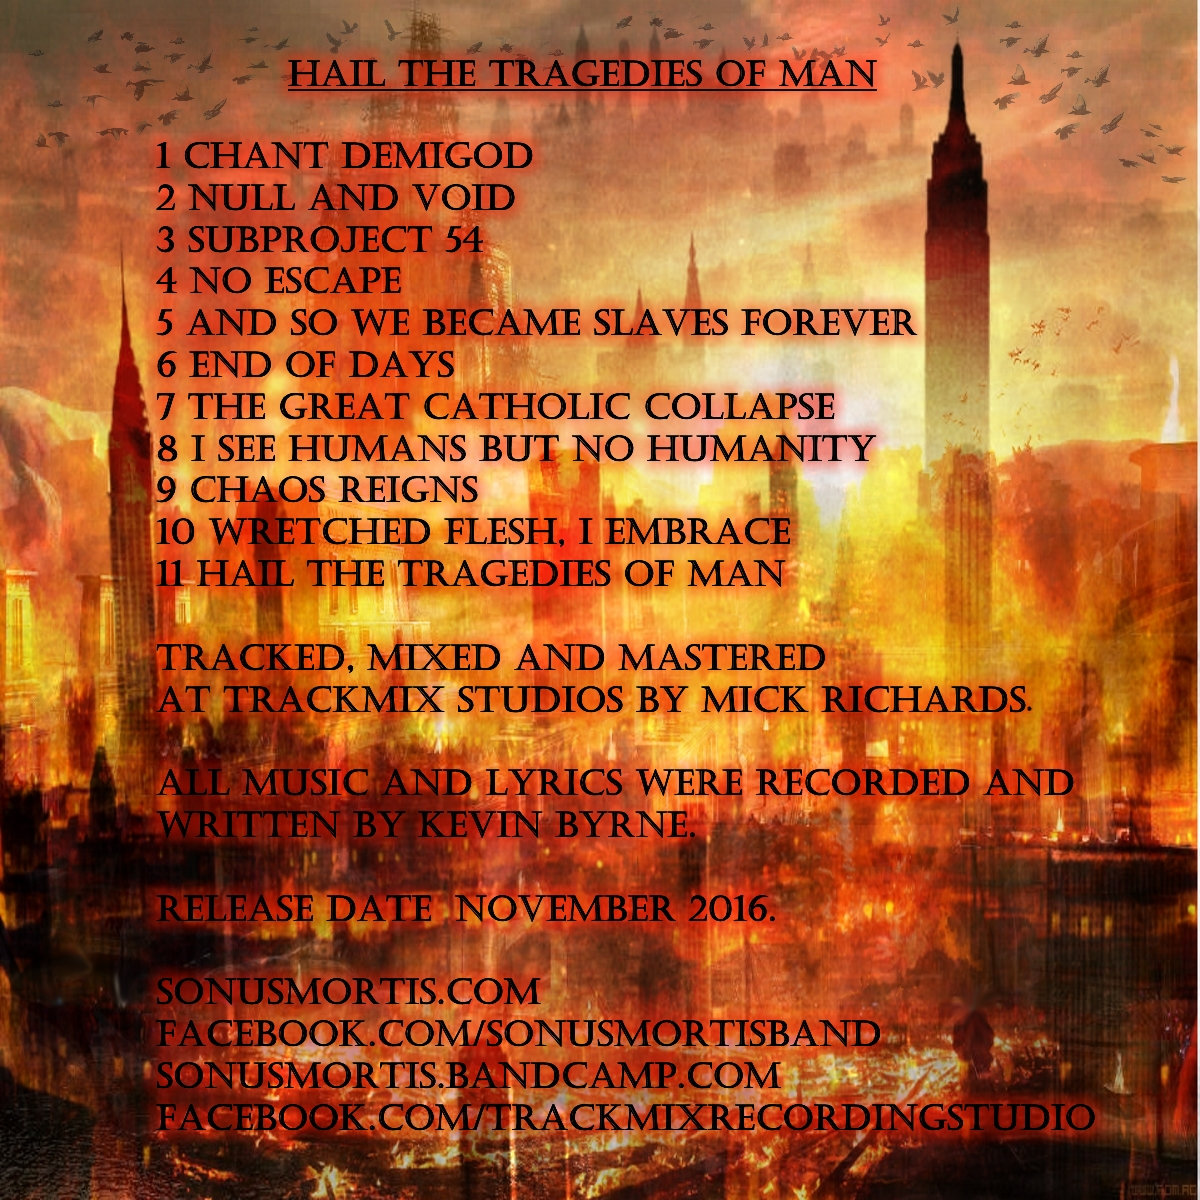 Includes unlimited streaming of Hail The Tragedies Of Man via the free  Bandcamp app, plus high-quality download in MP3, FLAC and more.